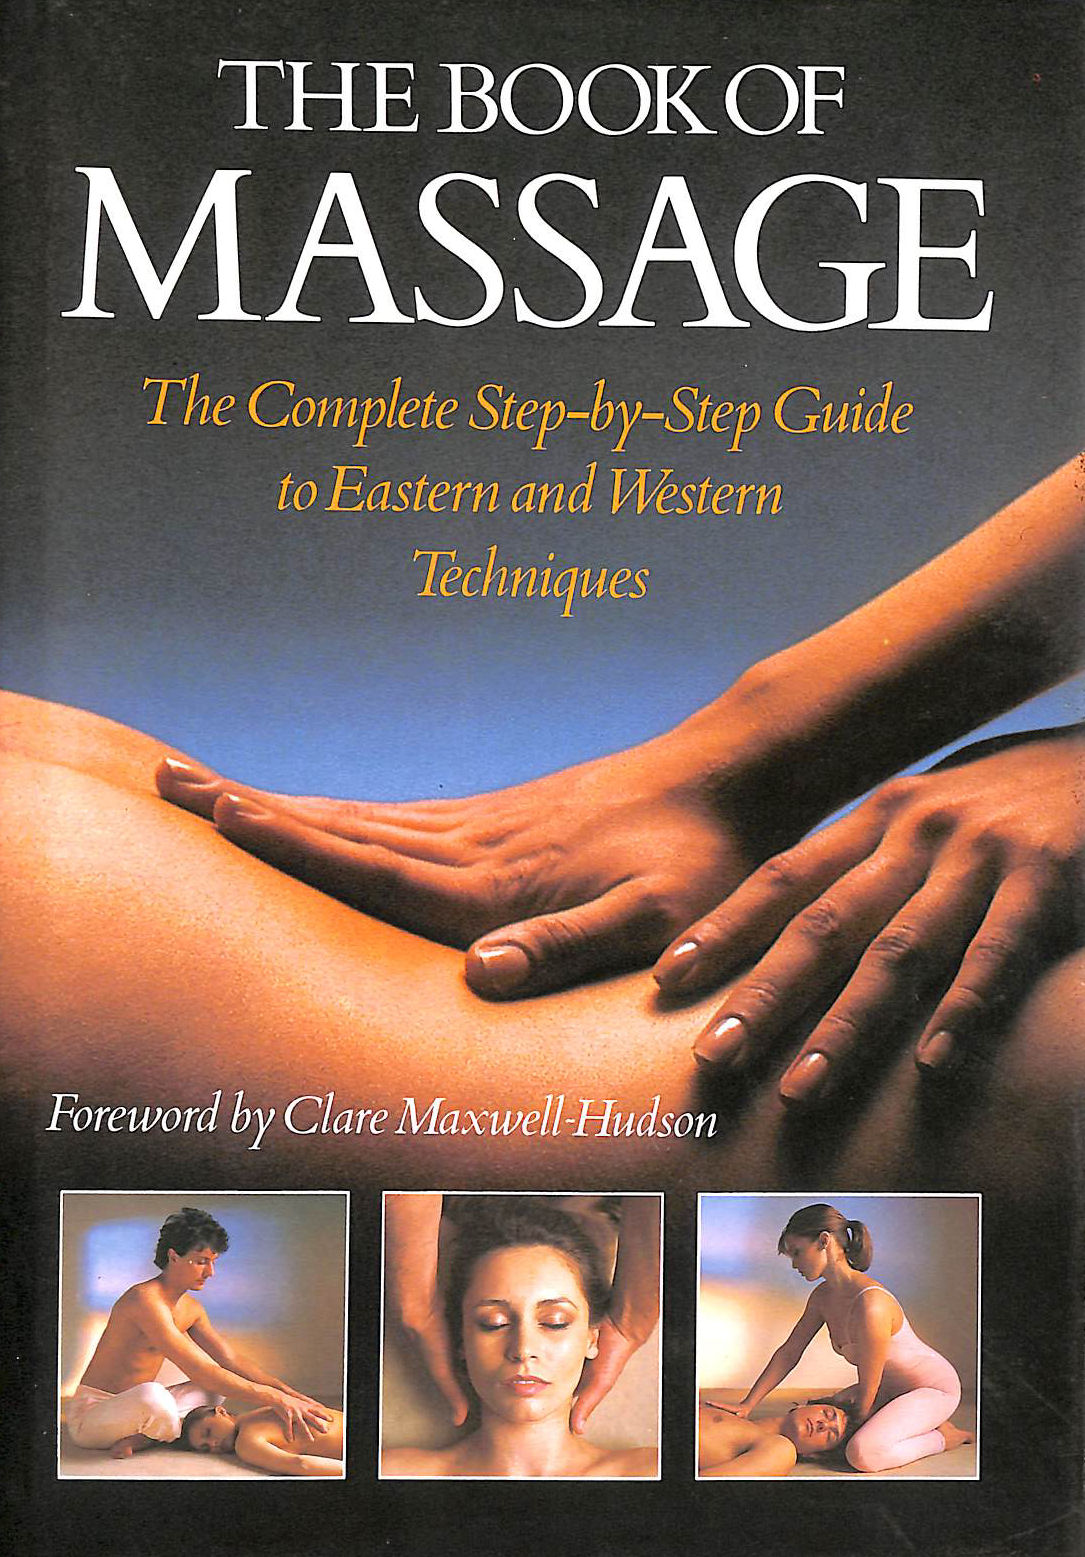 Image for The Book of Massage. The Complete Step-by-Step Guide to Eastern and Western Techniques